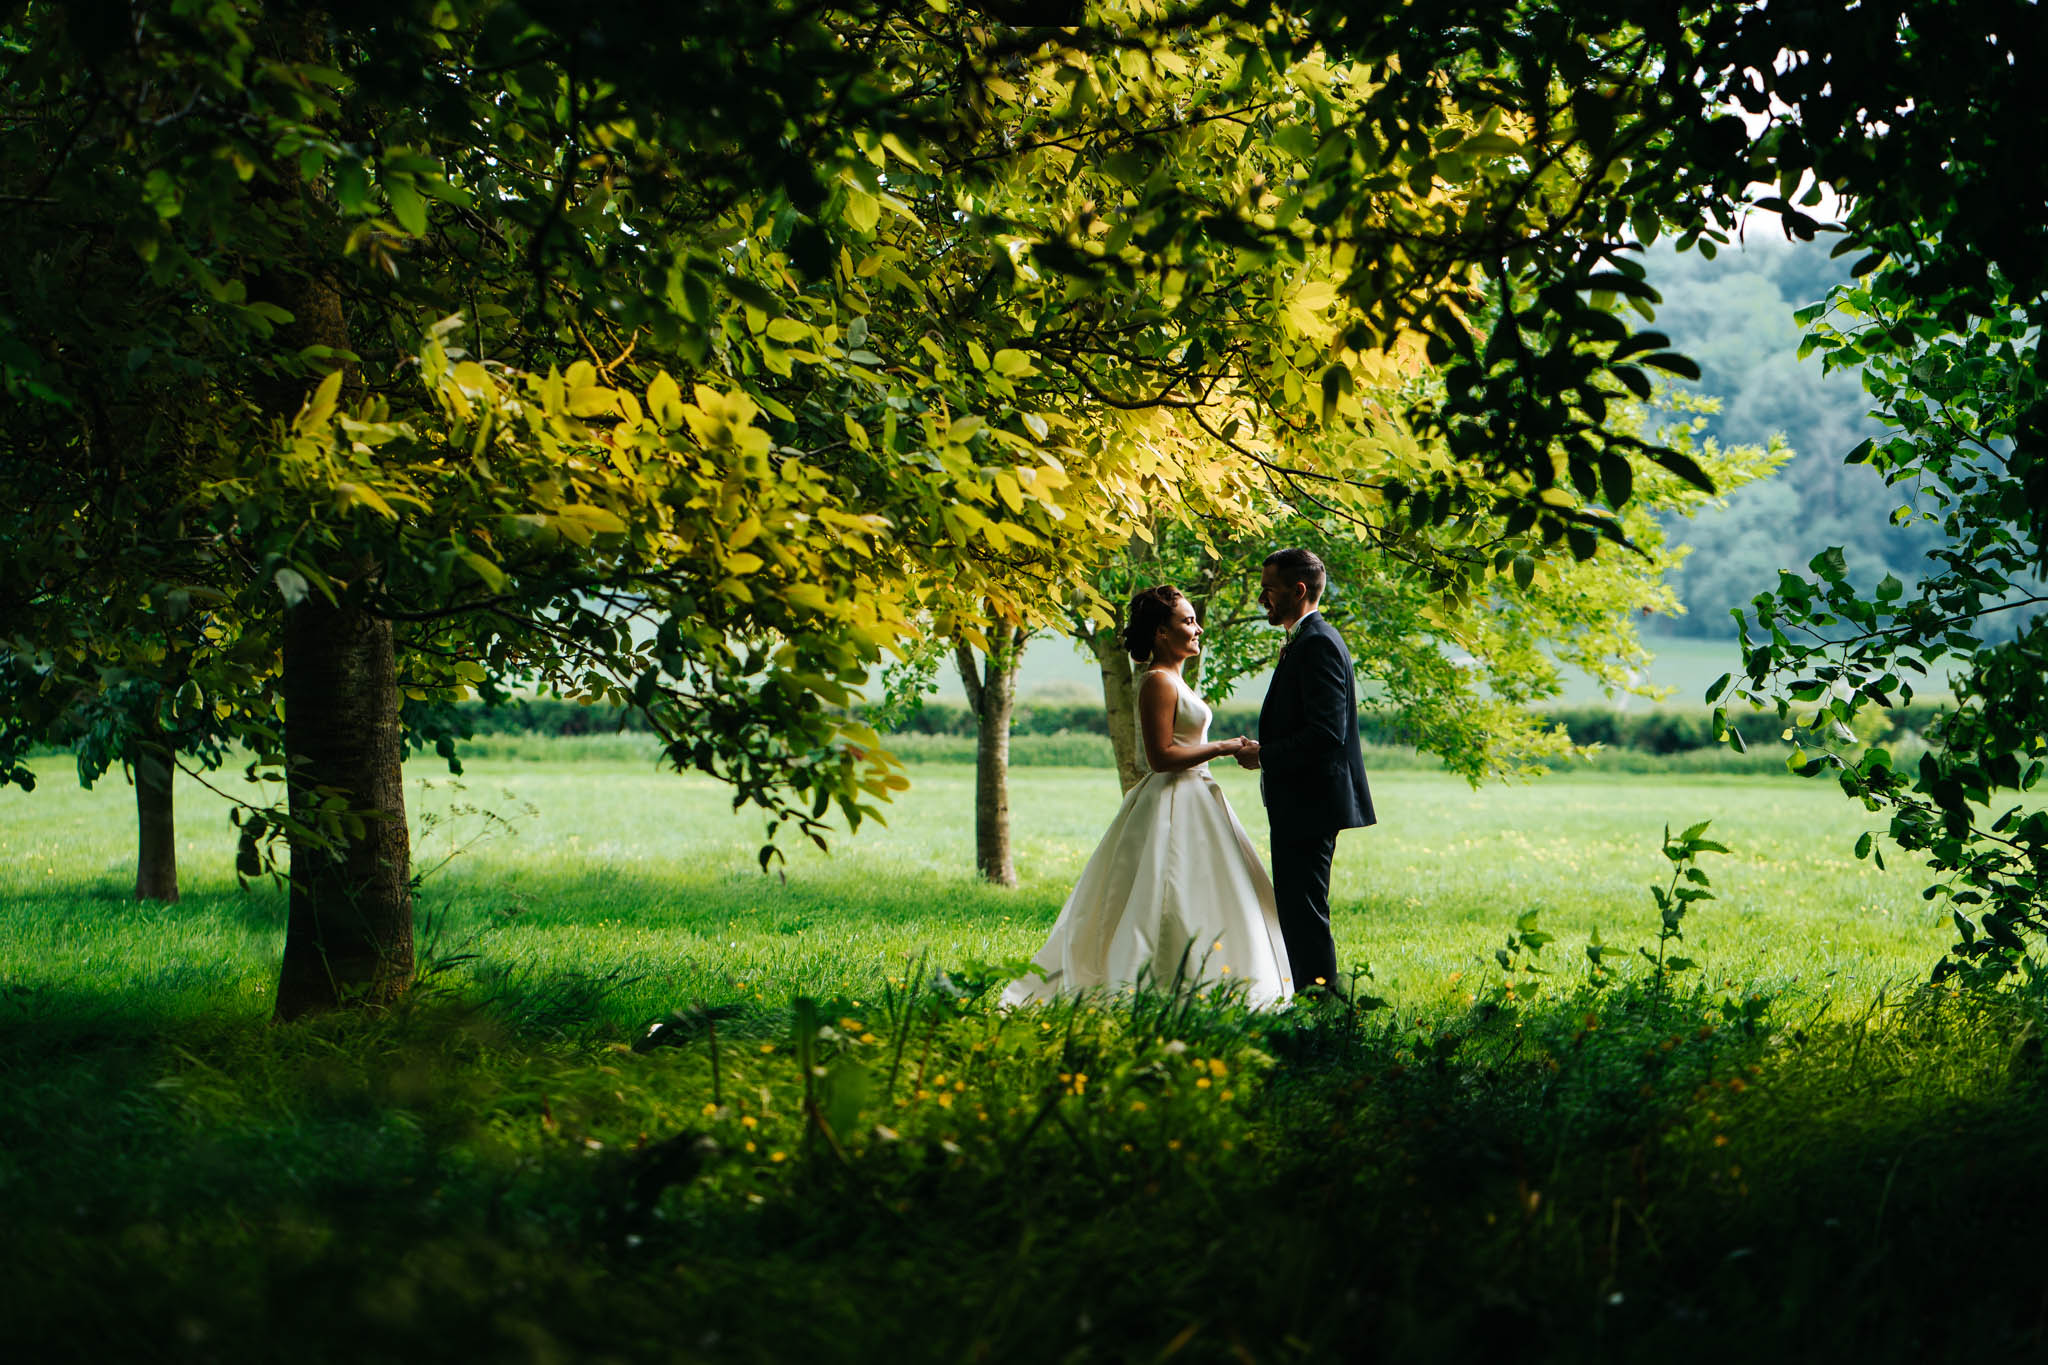 Hampshire wedding photography at tithe barn on a sunny day